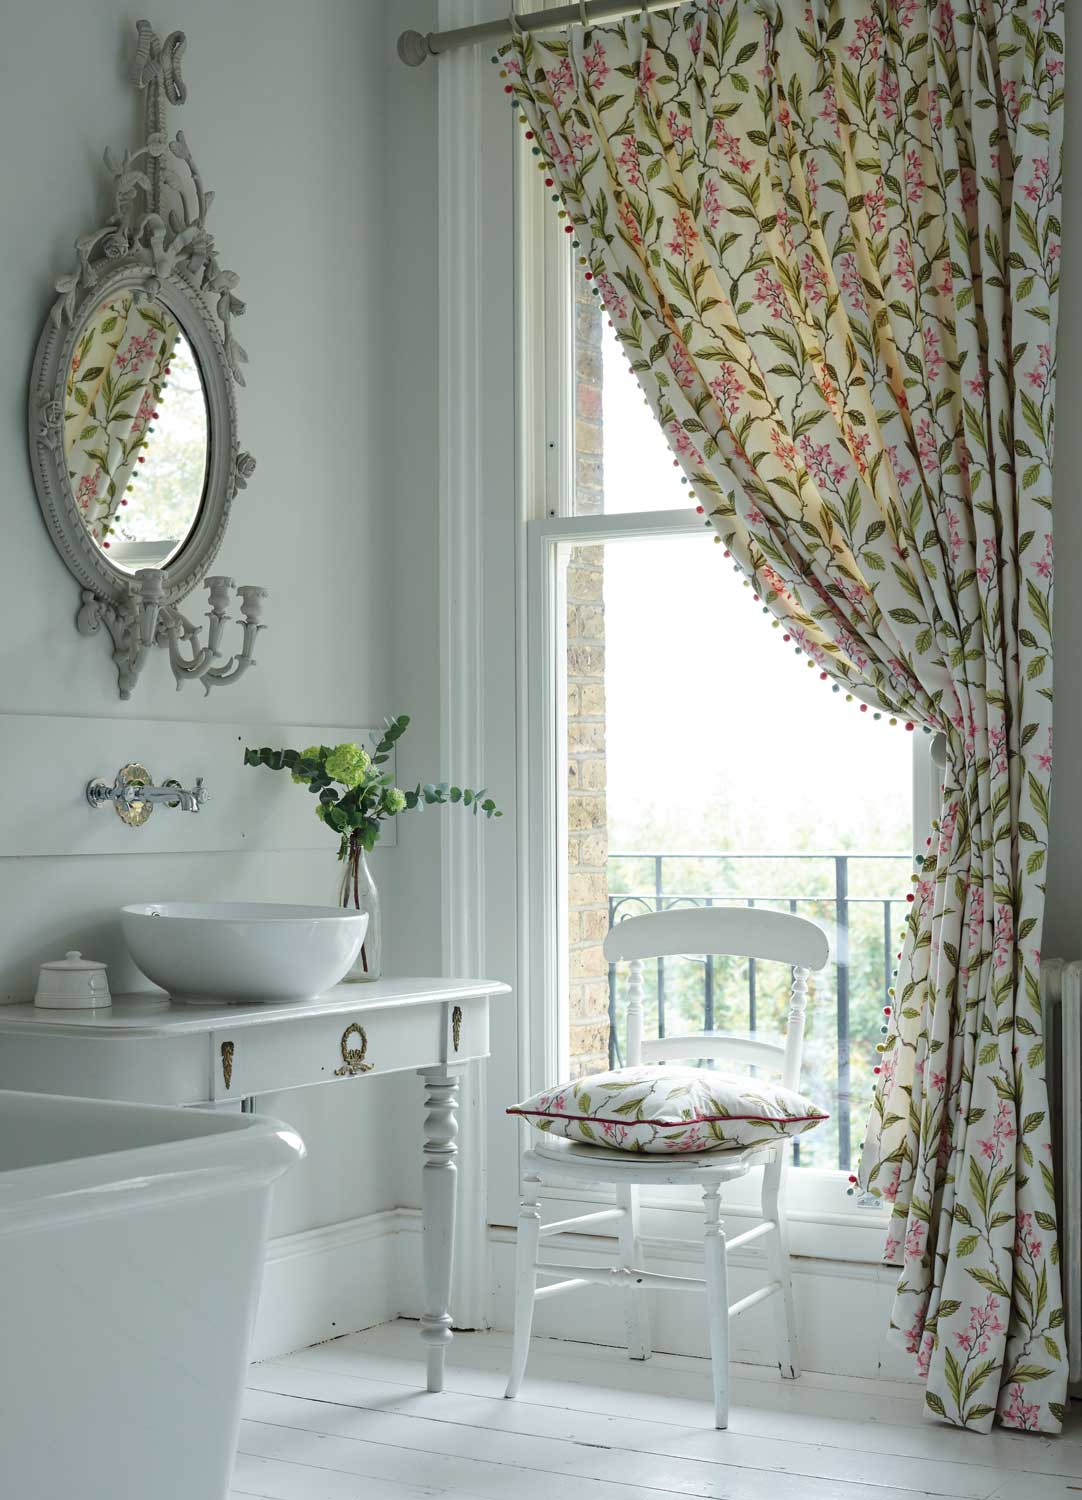 Stylish Tailor-Made Curtains